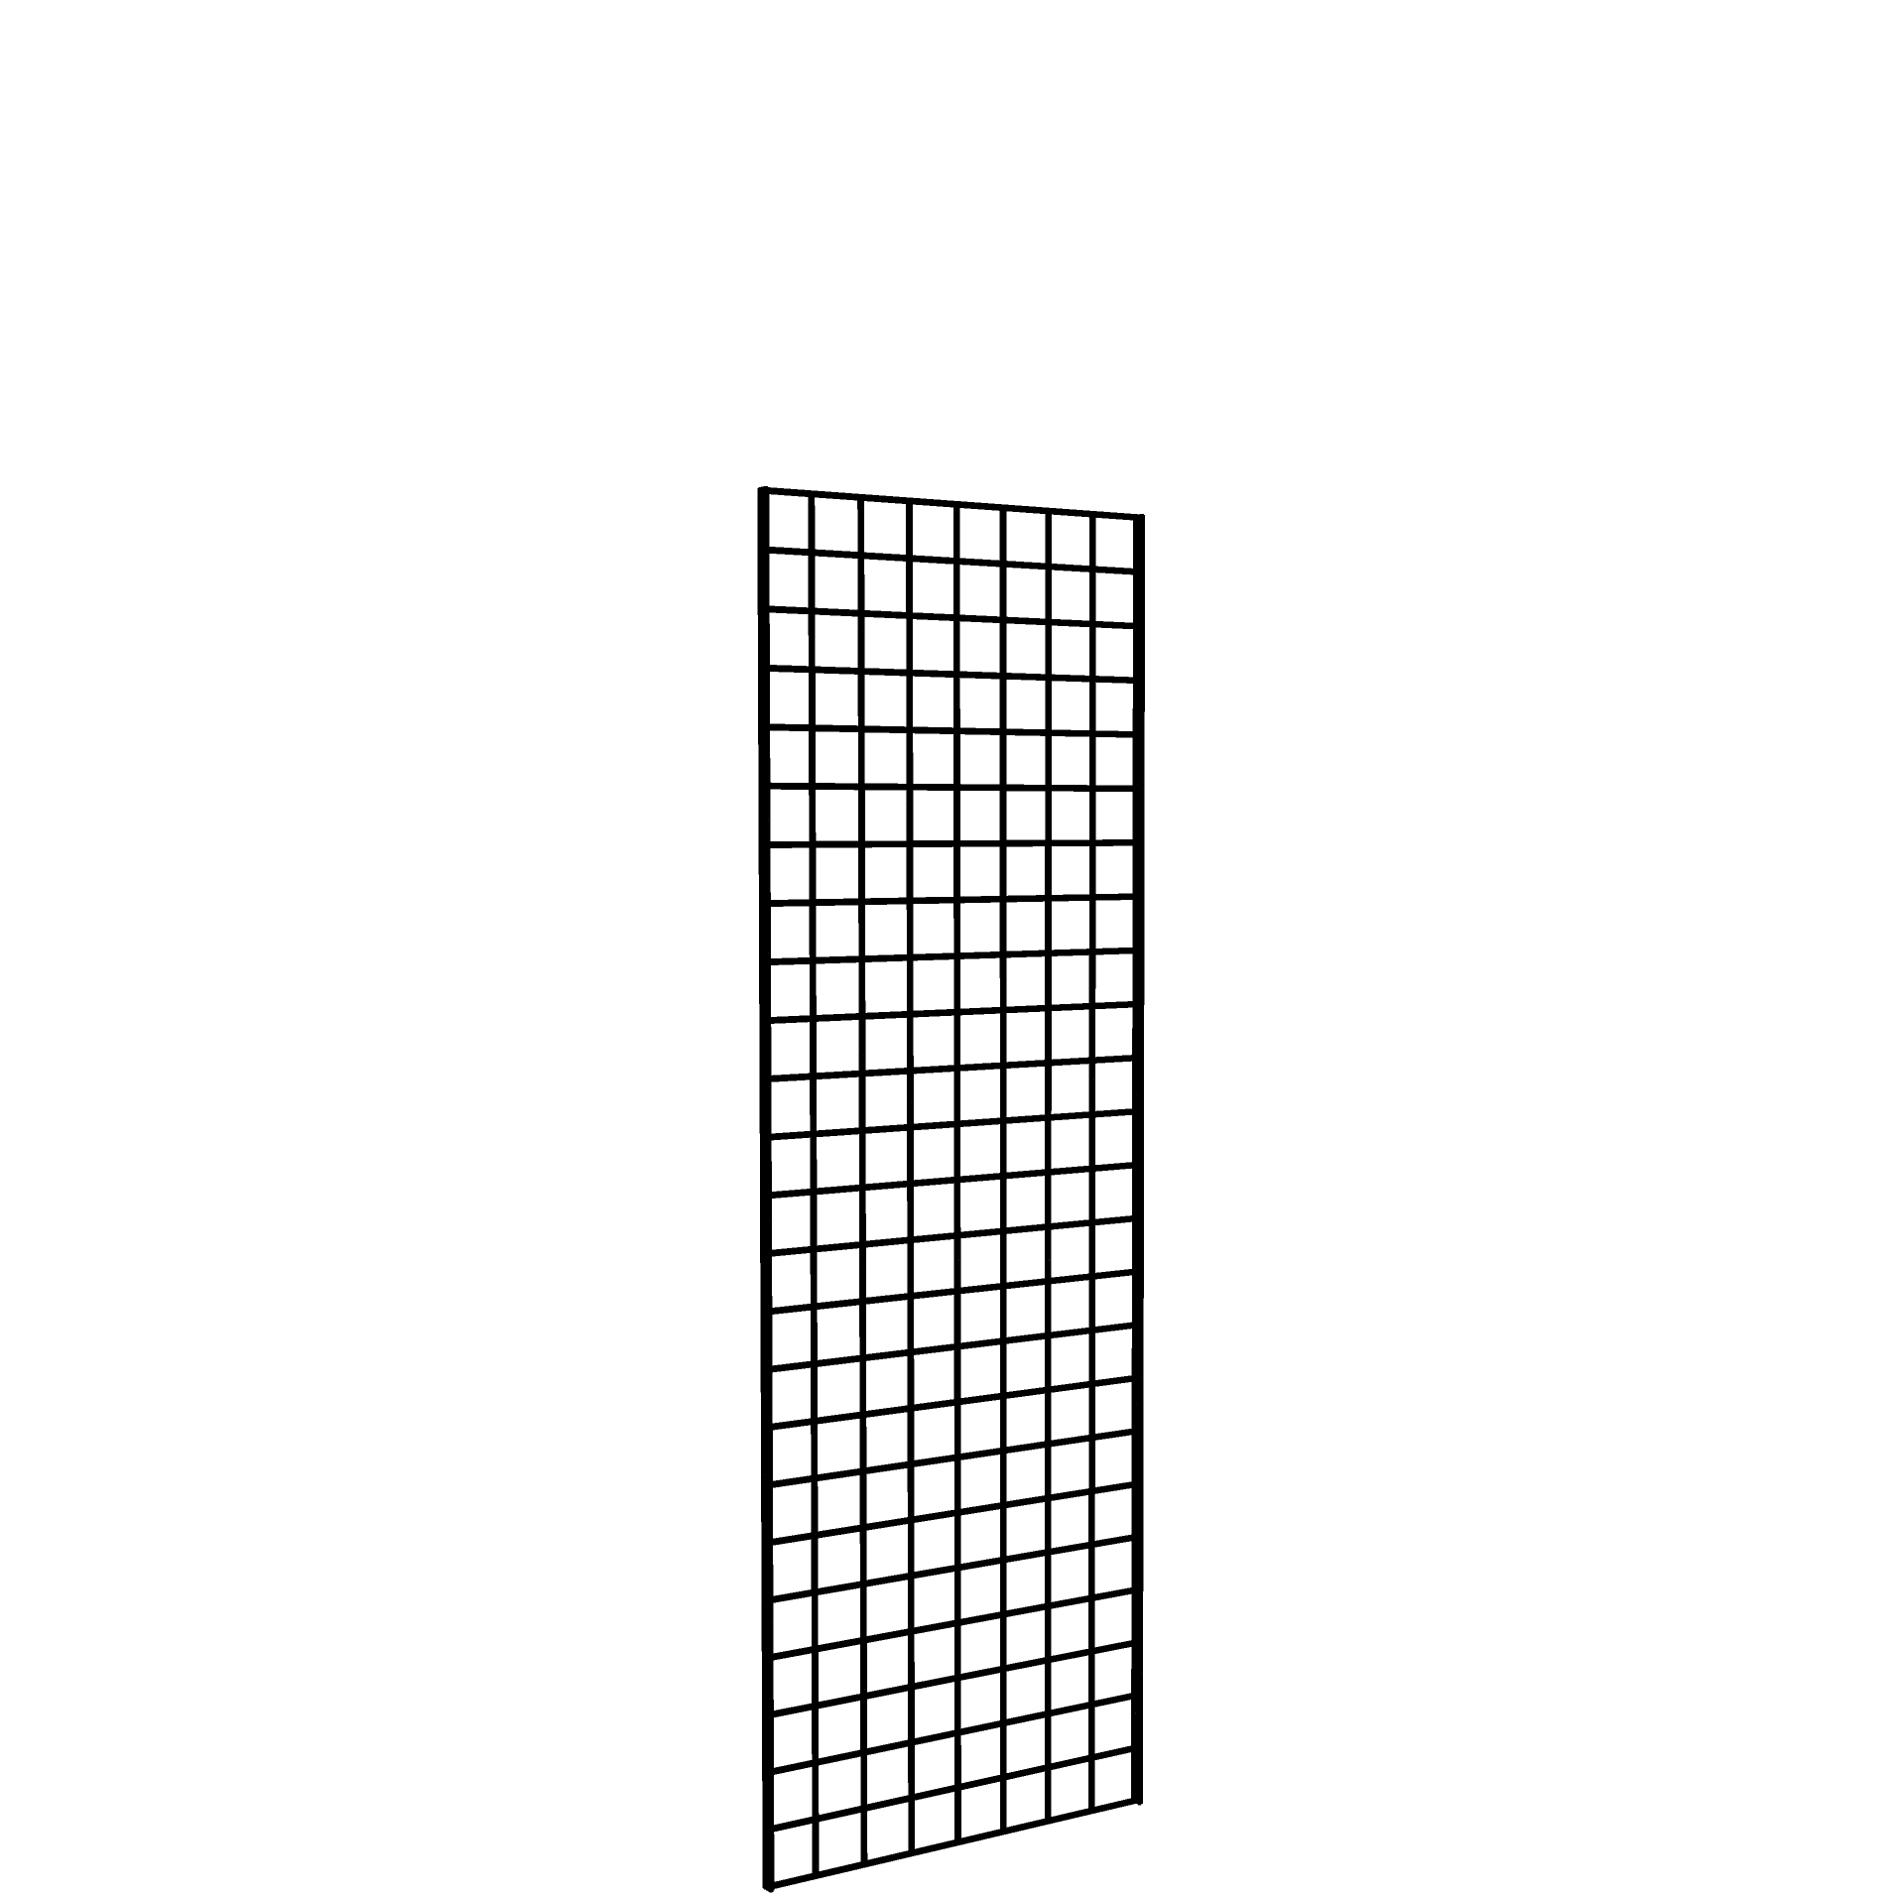 Gridwall Panel 2' x 6' Black